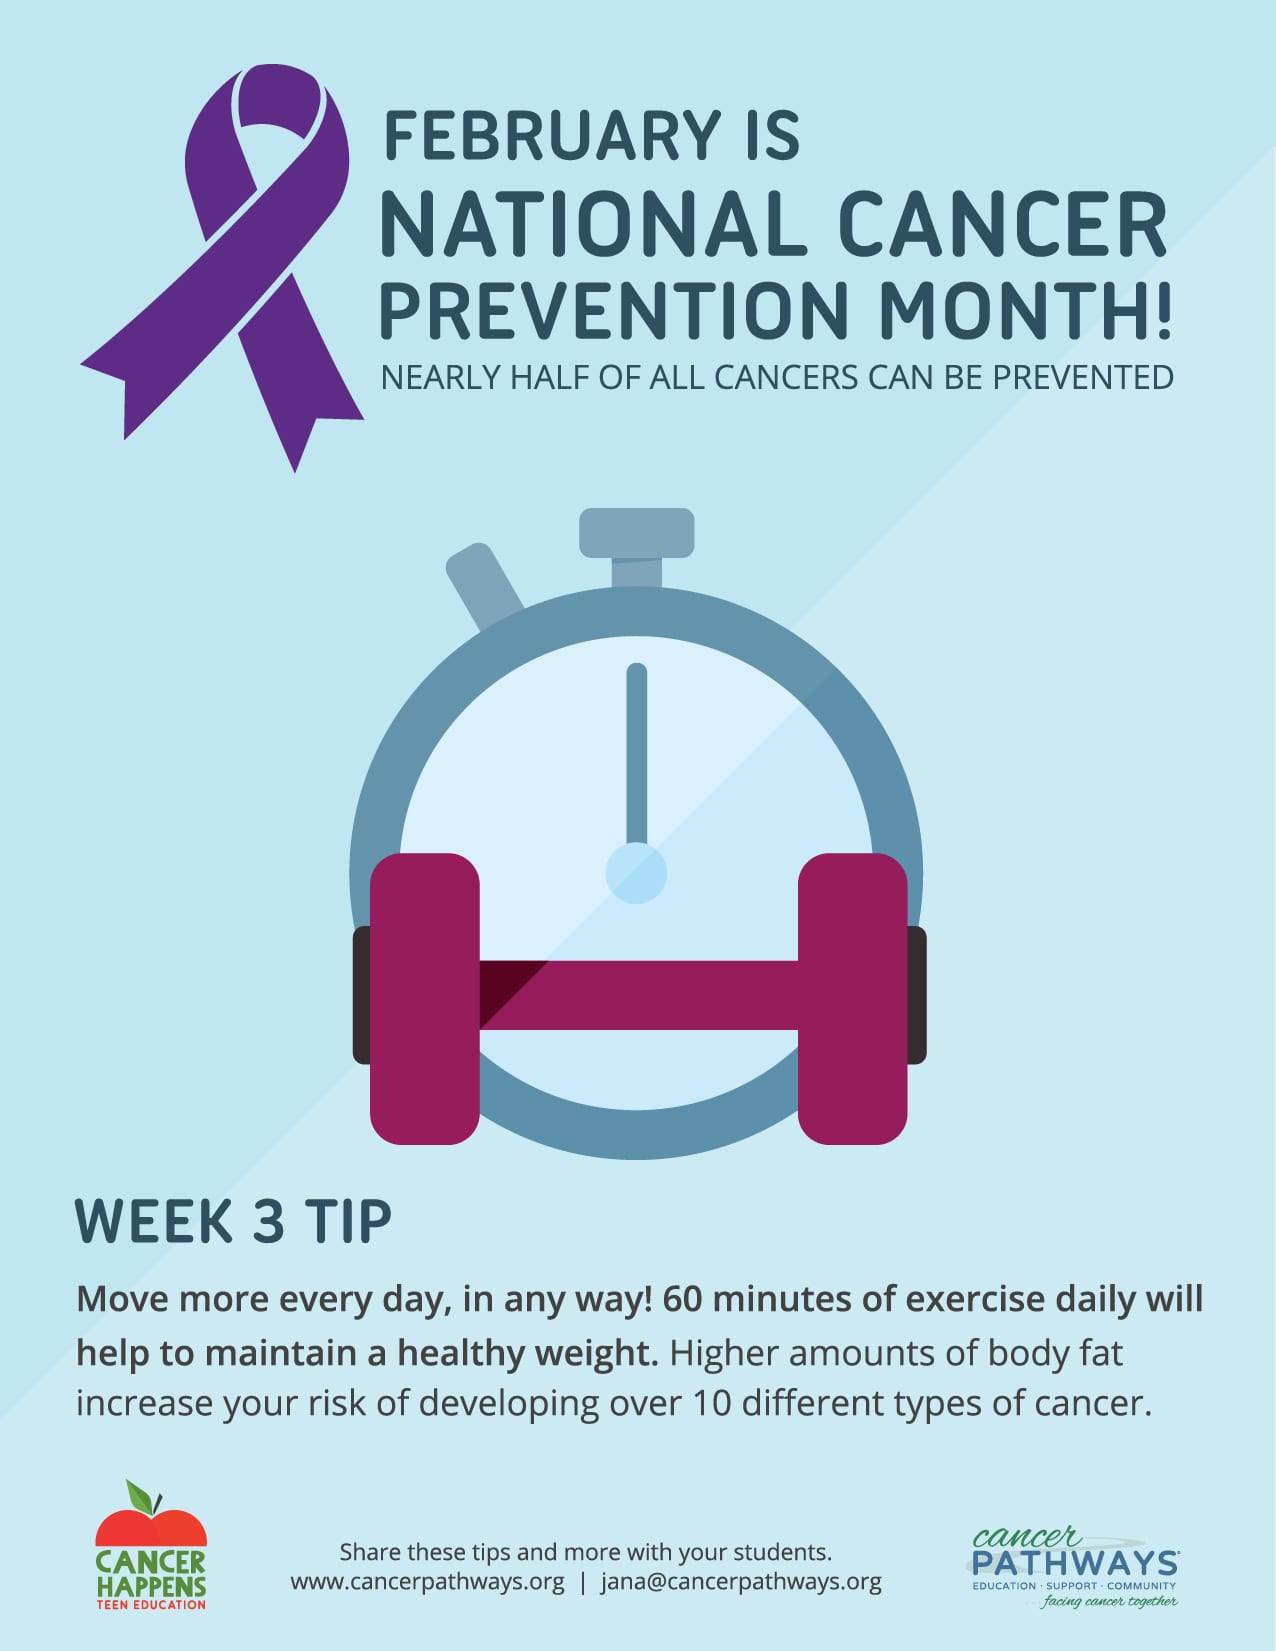 National Cancer Prevention Month - Exercise More